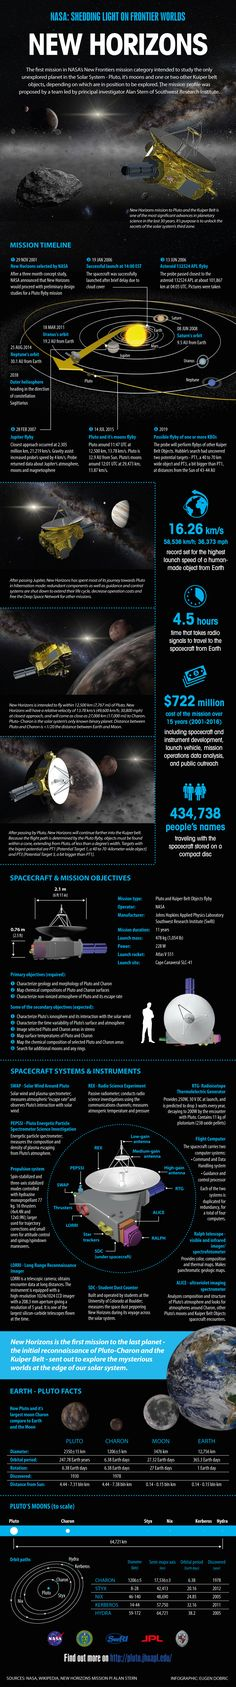 New Horizons Space Mission | Visual.ly